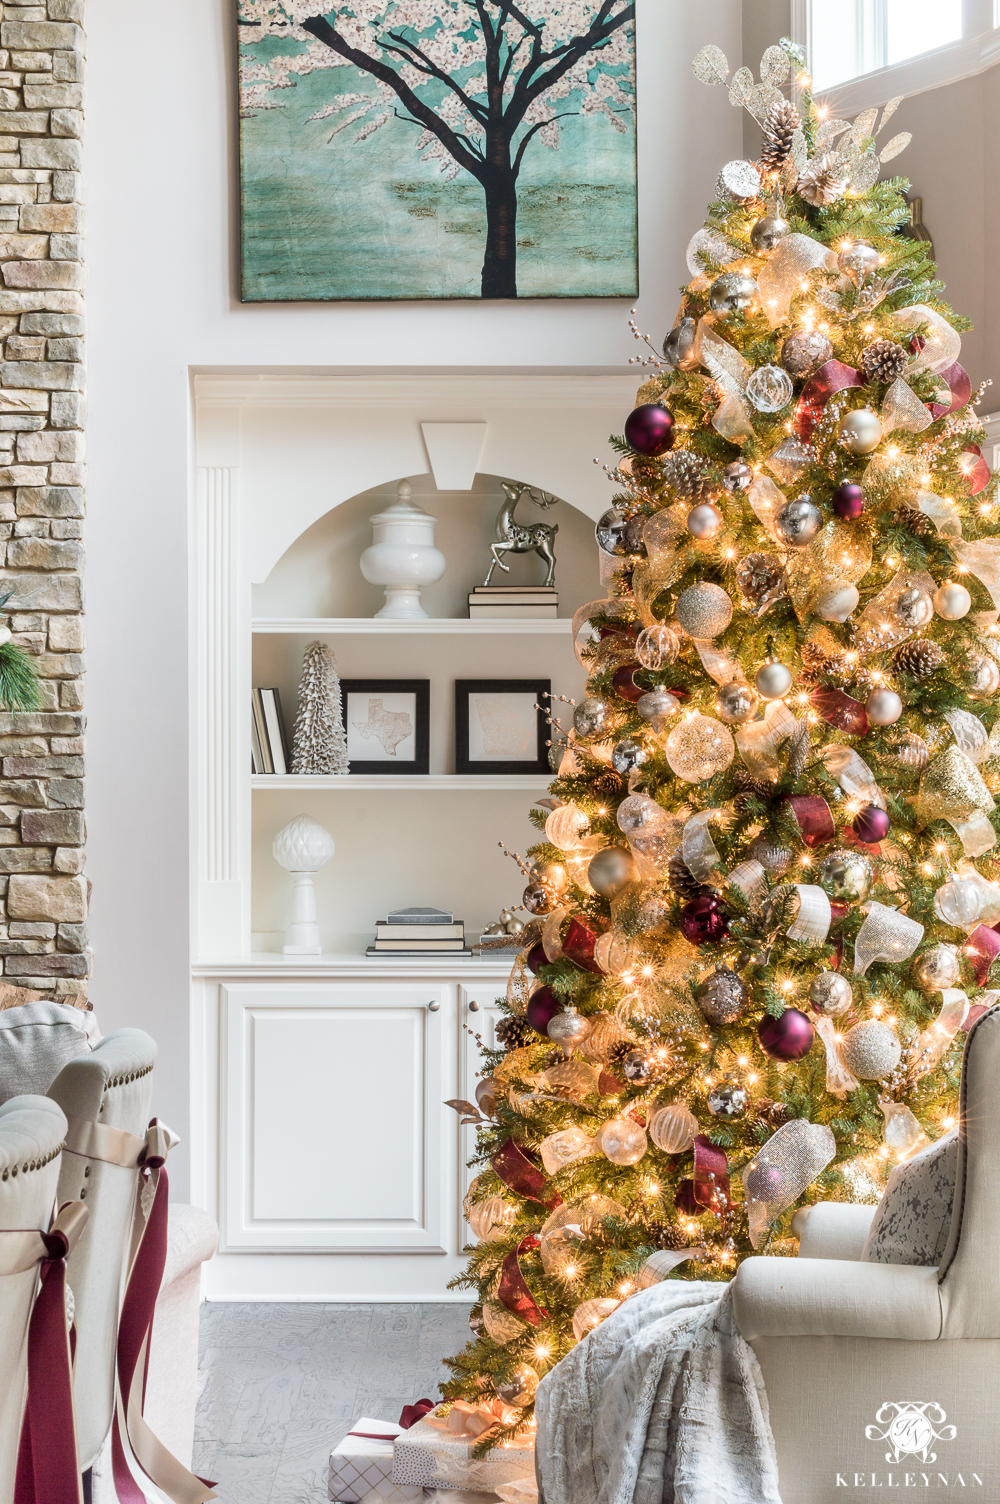 10 Ways to Decorate Your Christmas Tree - Christmas Tree Decorated With Ribbon